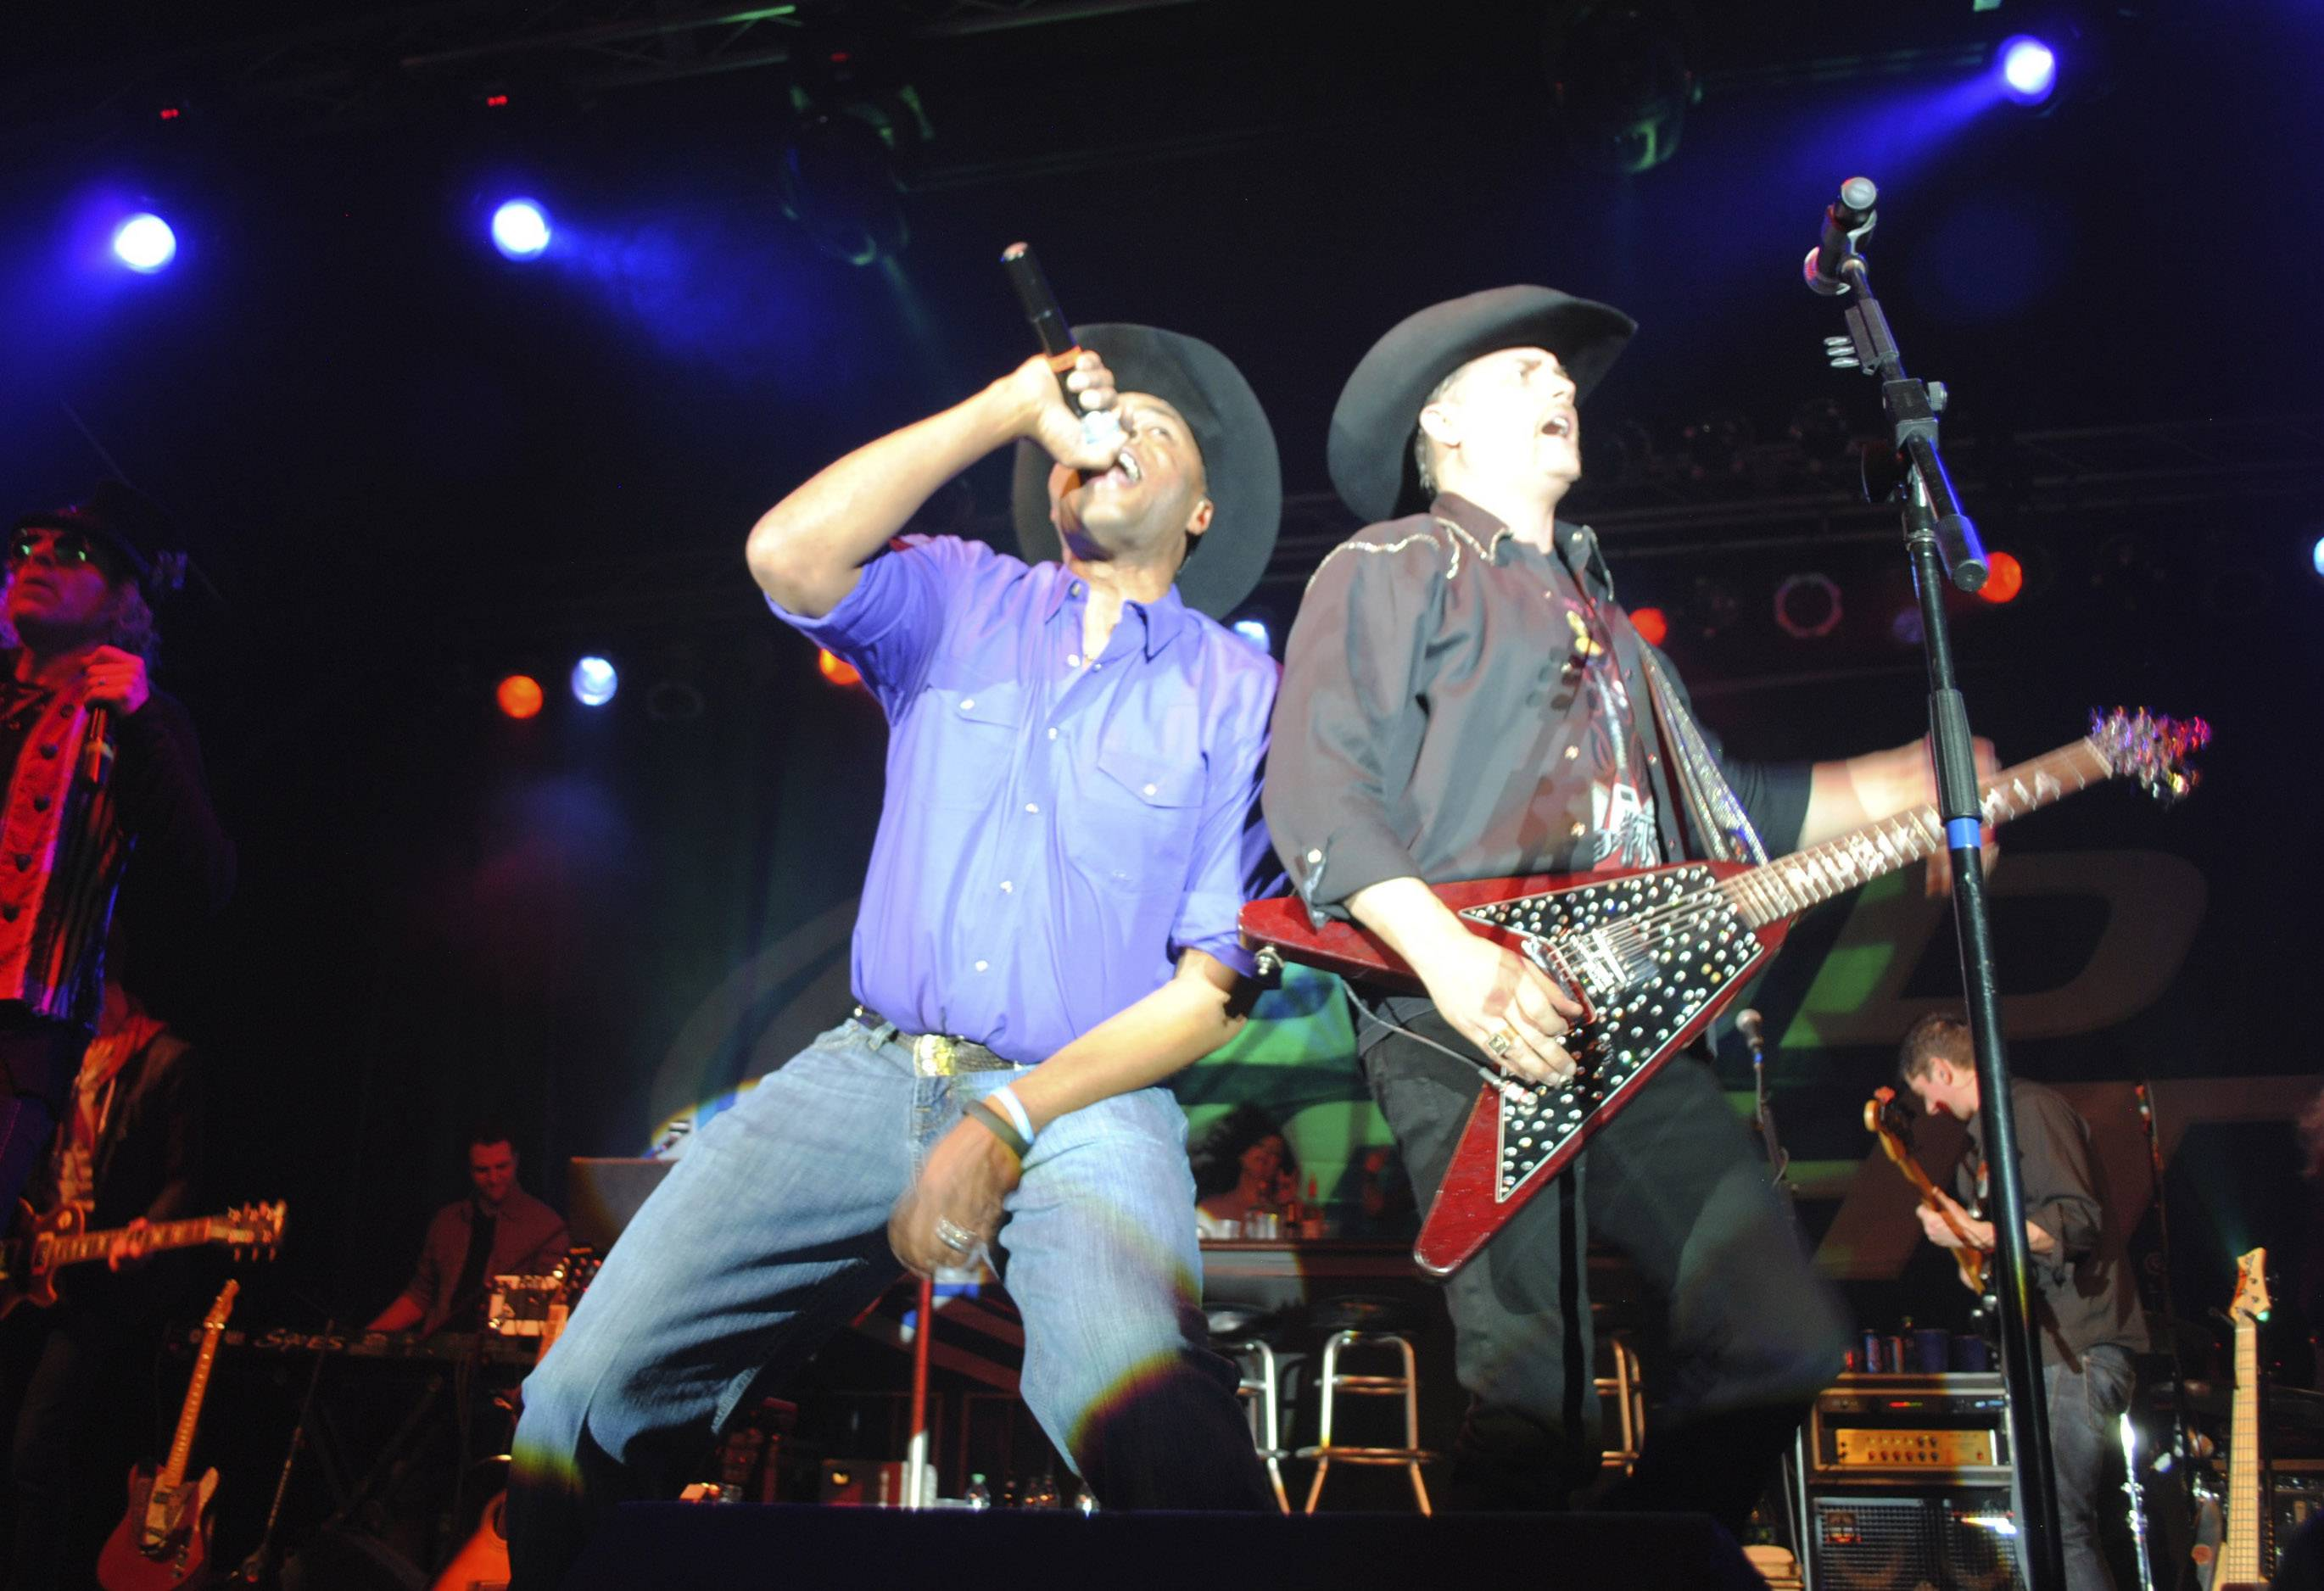 Cowboy Troy, left, joins John Rich, this past Saturday for the inaugural performance by Big & Rich at Austin's Fuel Arena at the Lake County Fairgrounds in Grayslake.